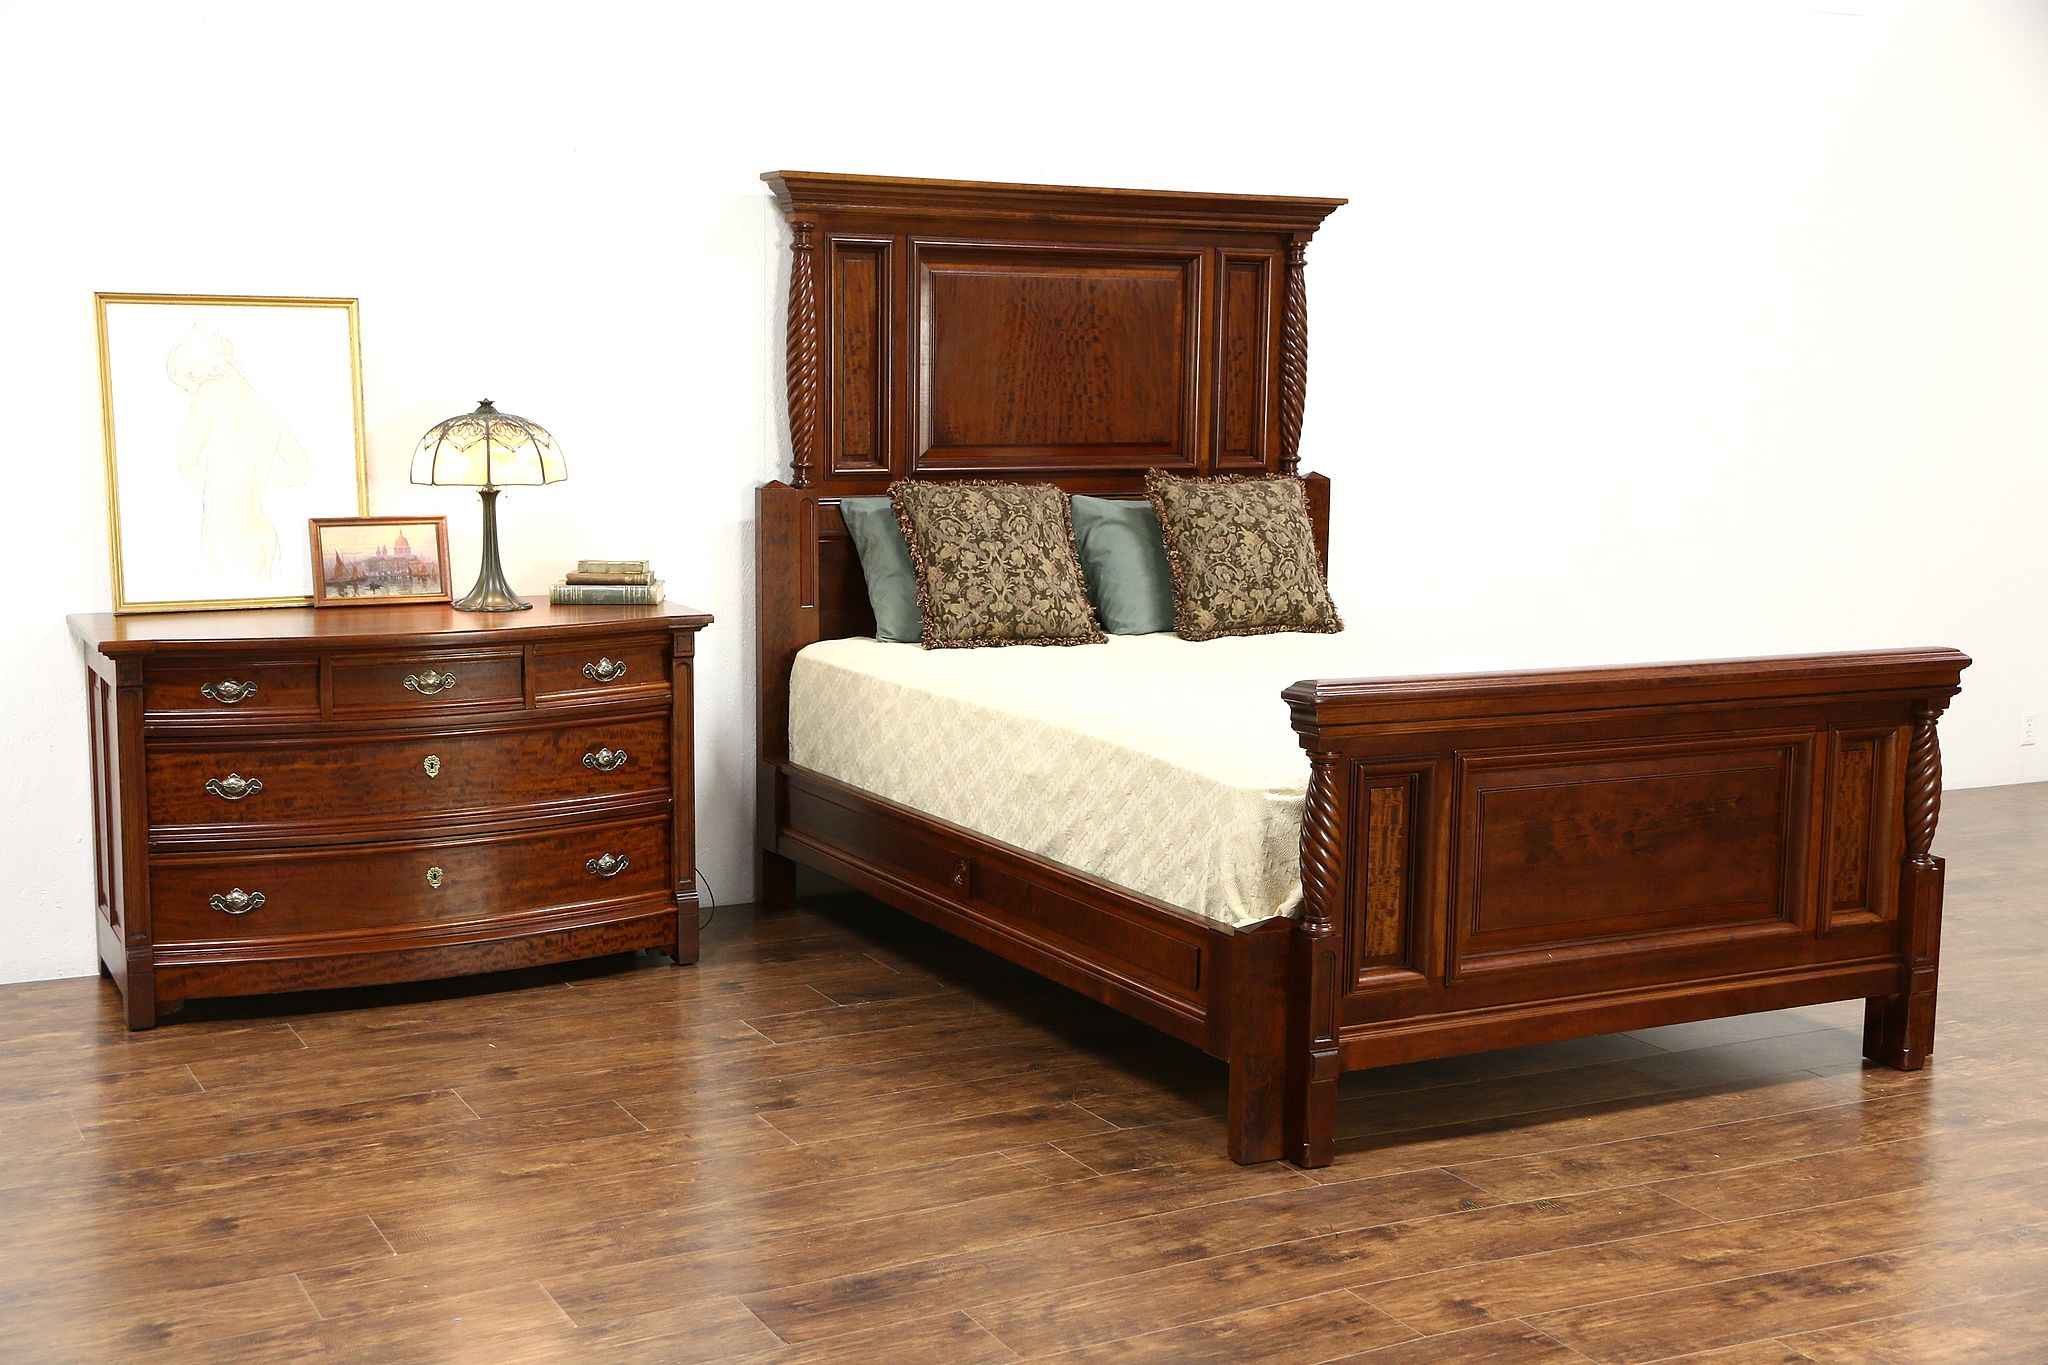 Queen Size 2 Pc. Carved Cherry & Mahogany 1890 Antique Bedroom Set ...